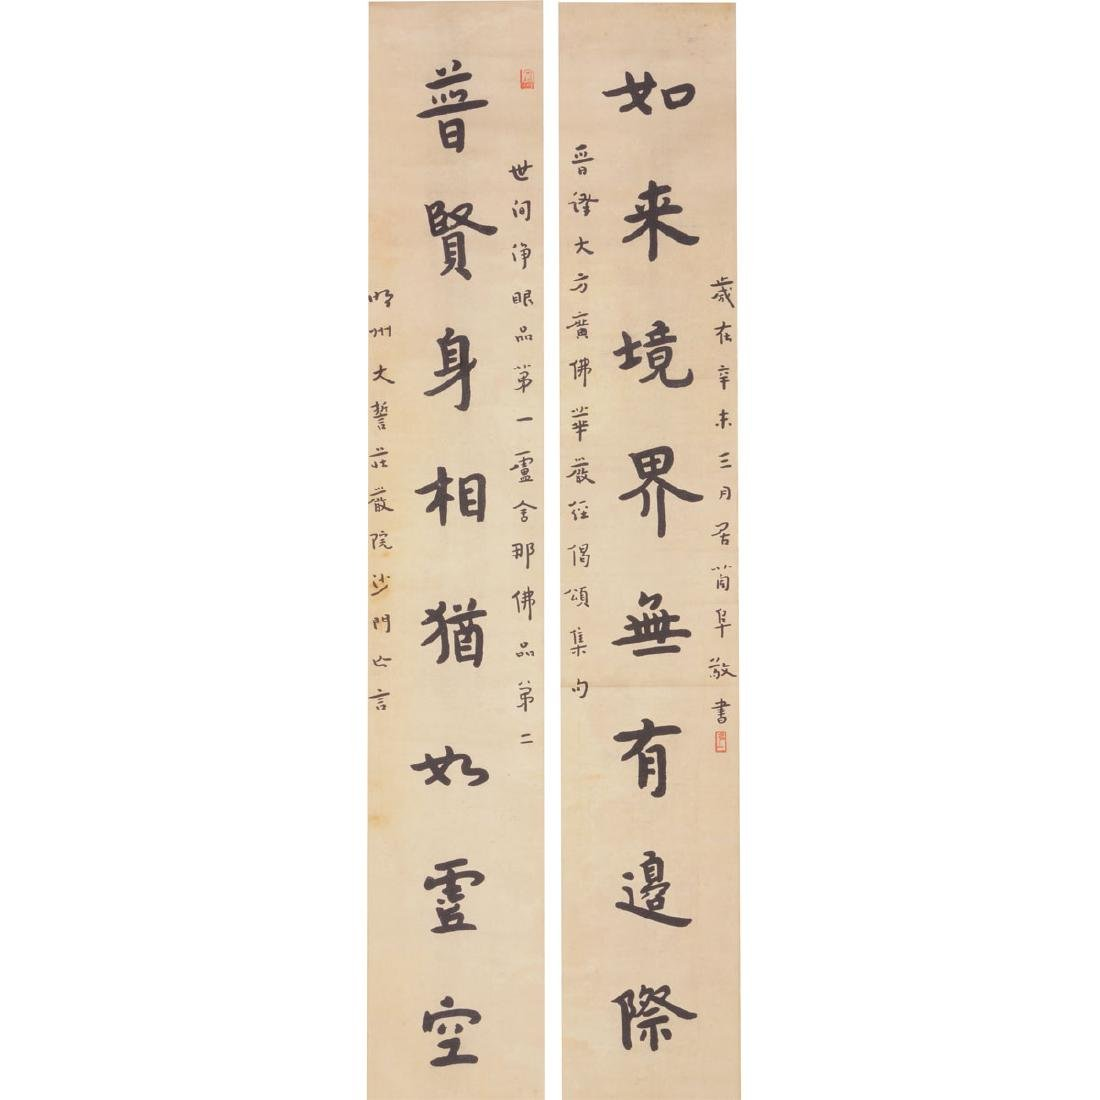 In the Manner of Hongyi: Calligraphy Couplet